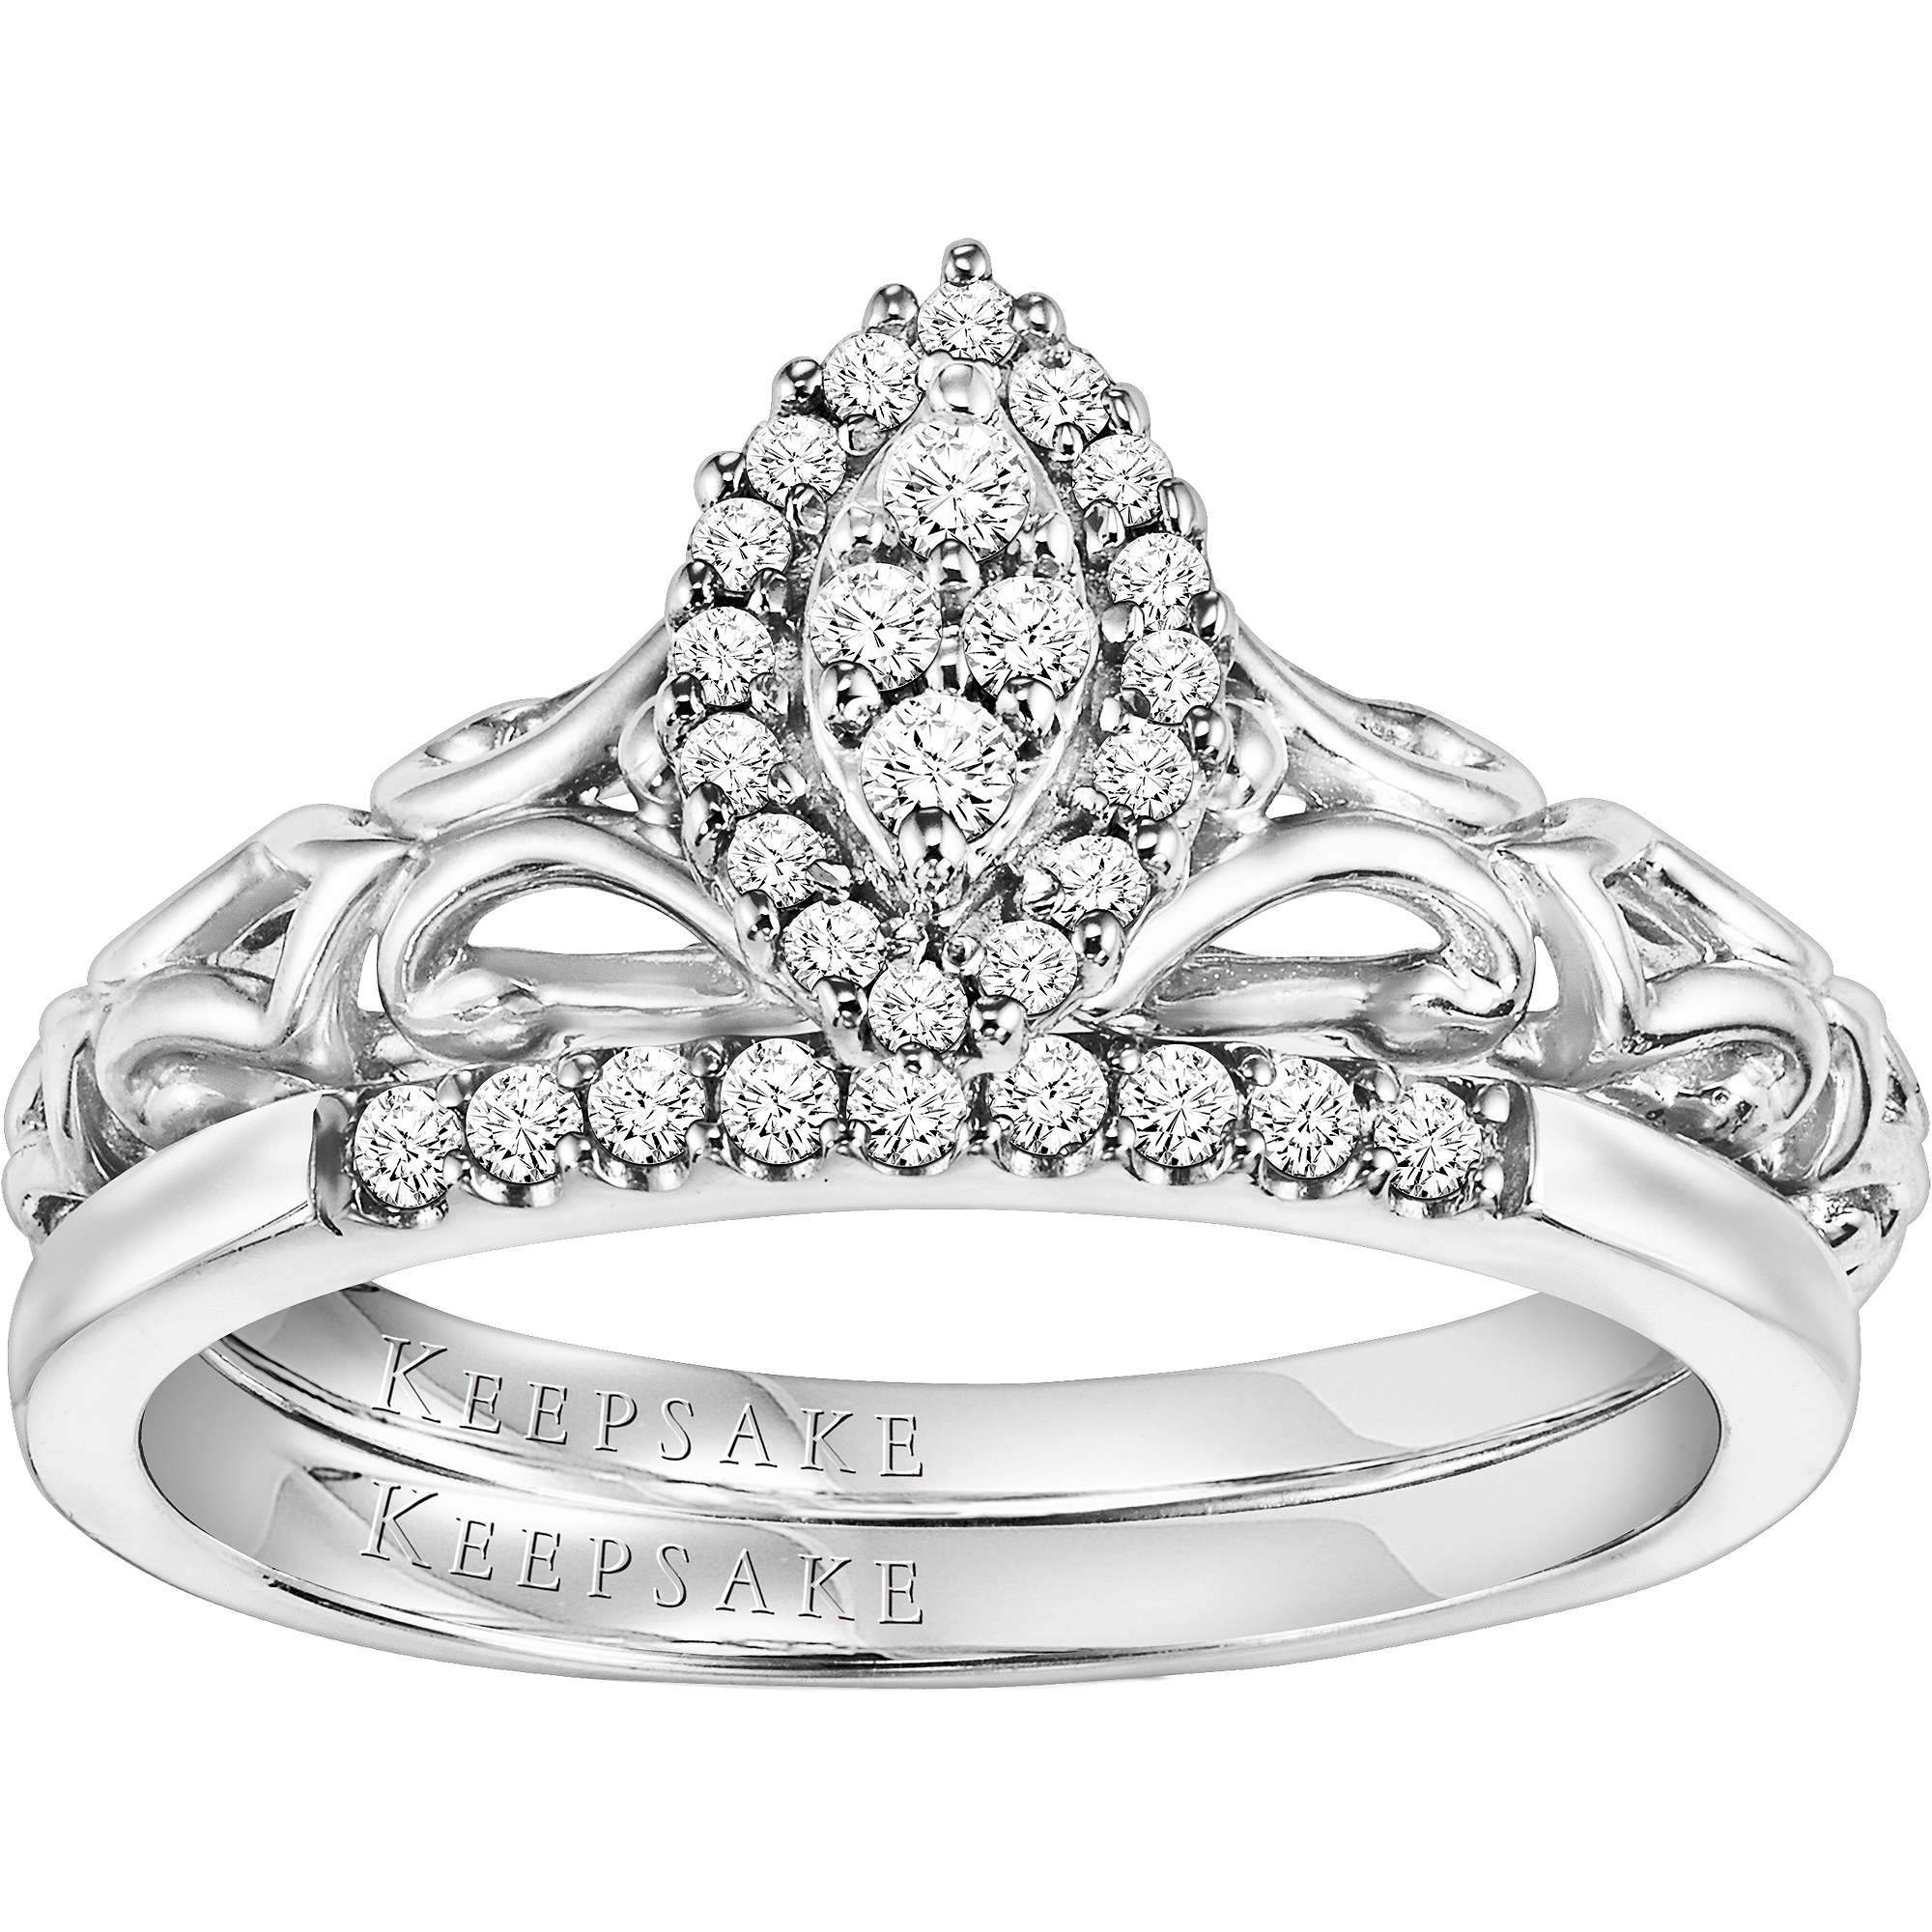 Keepsake Hope 1 4 Carat T W Certified Diamond Sterling Silver